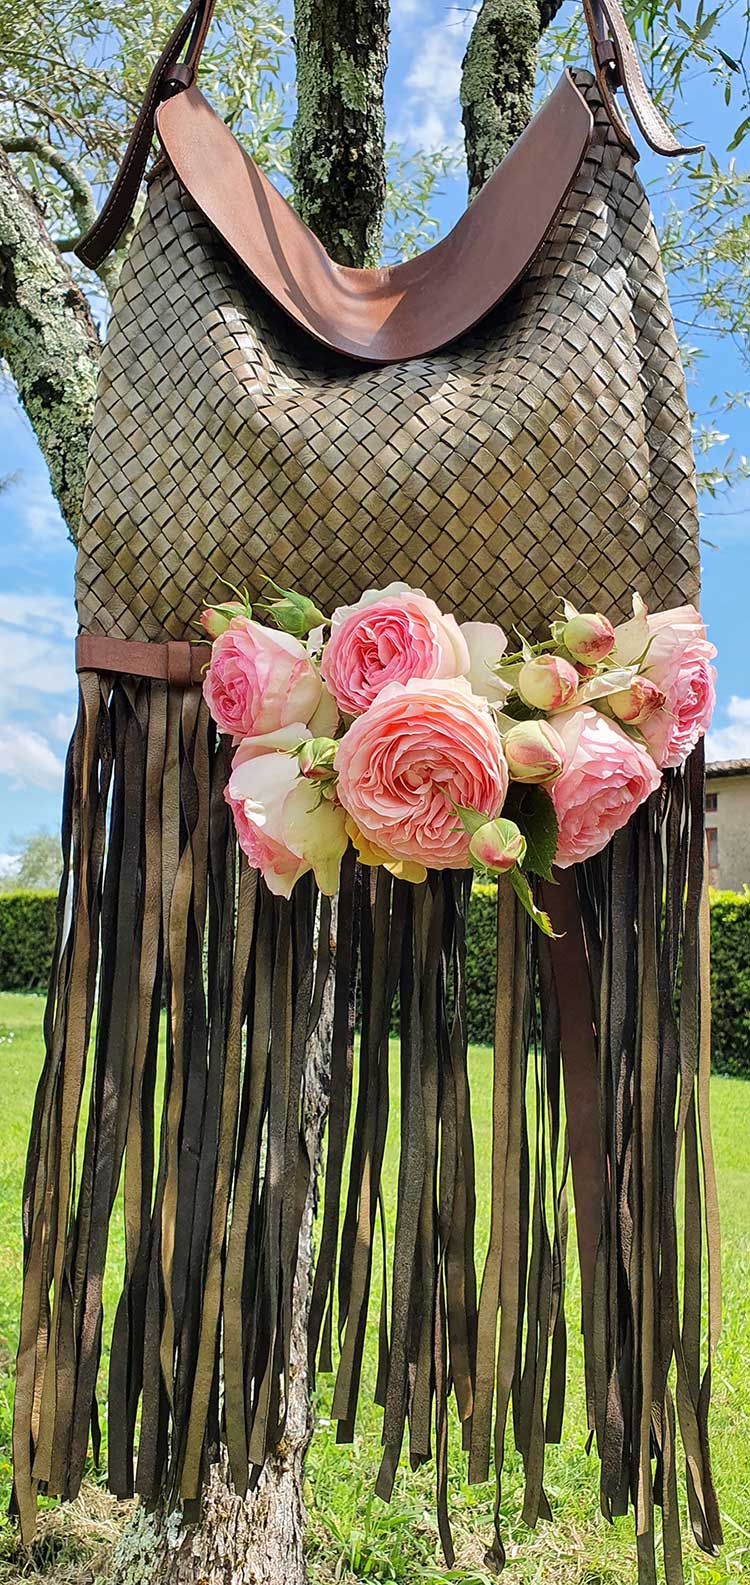 Olive green weaving bag made in Italy roses